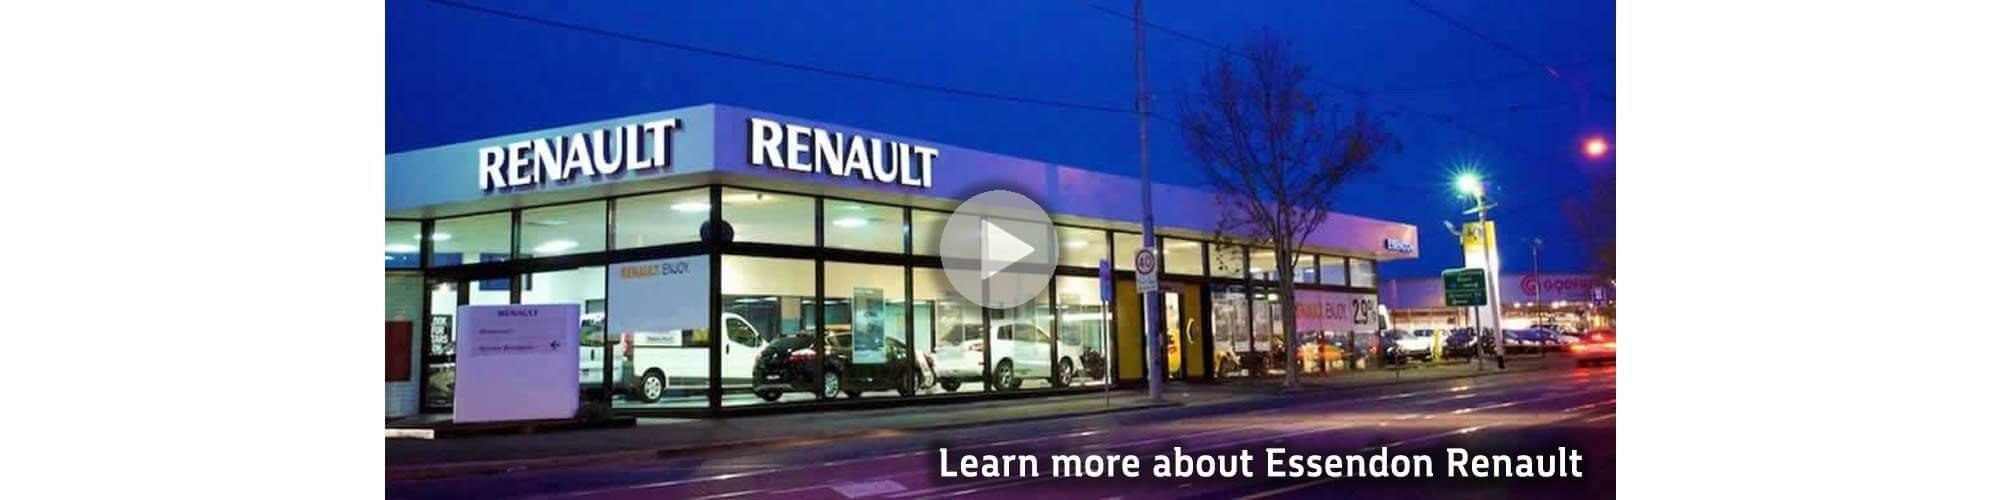 About Us - Essendon Renault Video